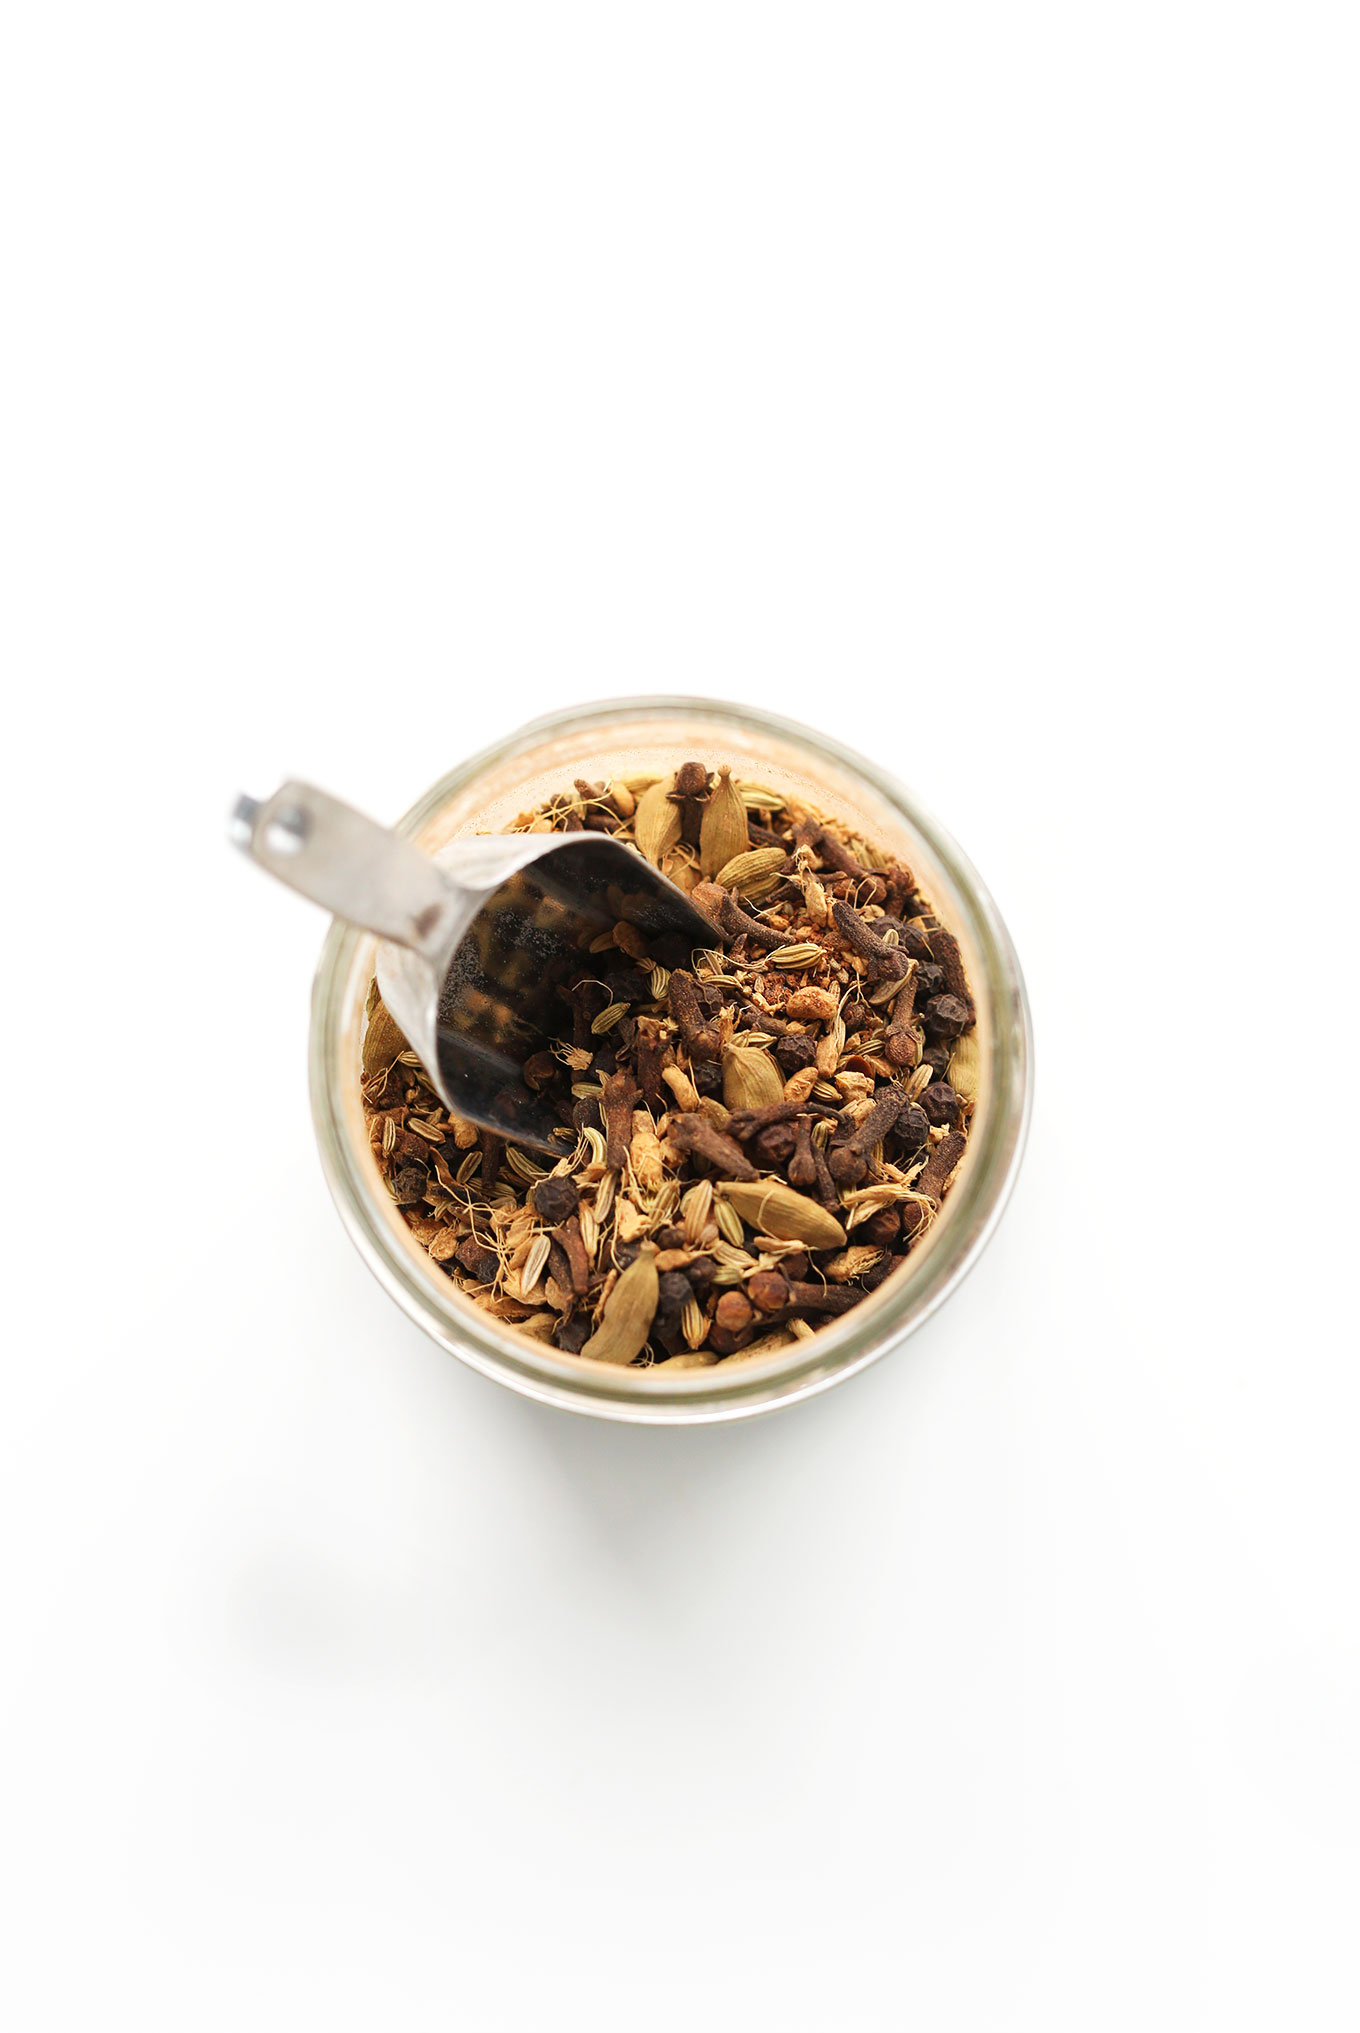 Grabbing a scoop of our homemade Chai Spice Mix